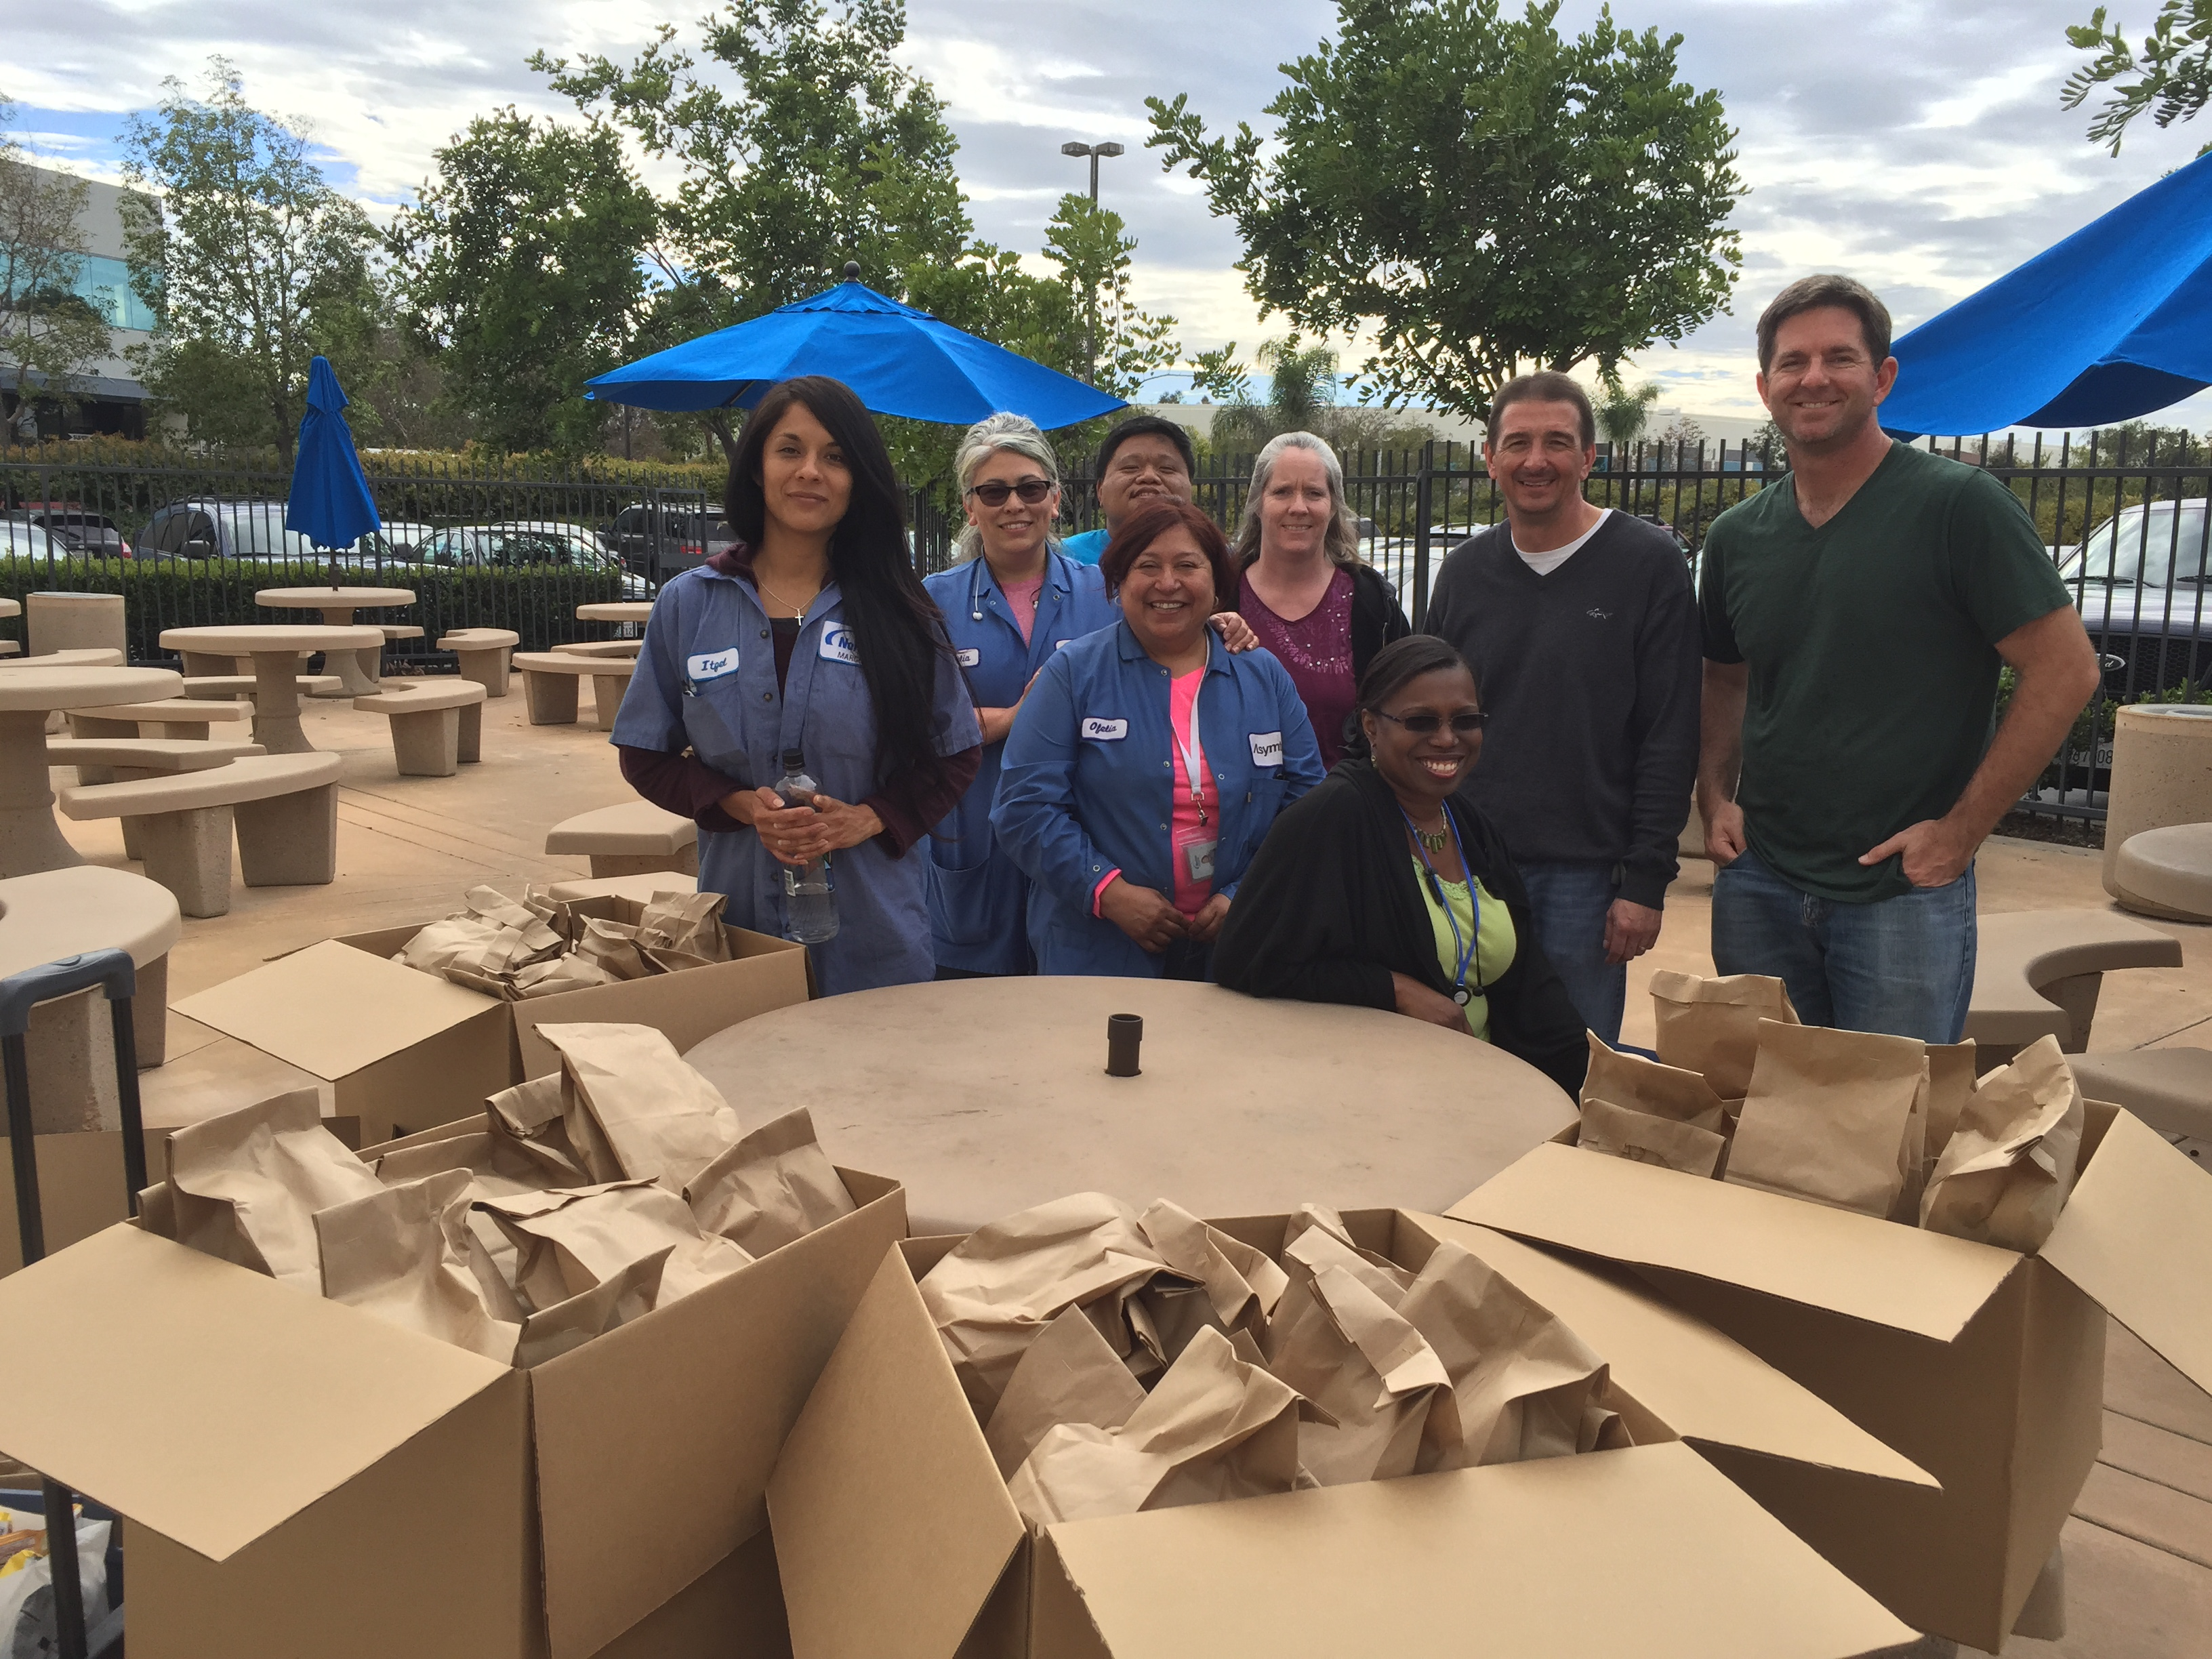 nordson group makes sack lunches